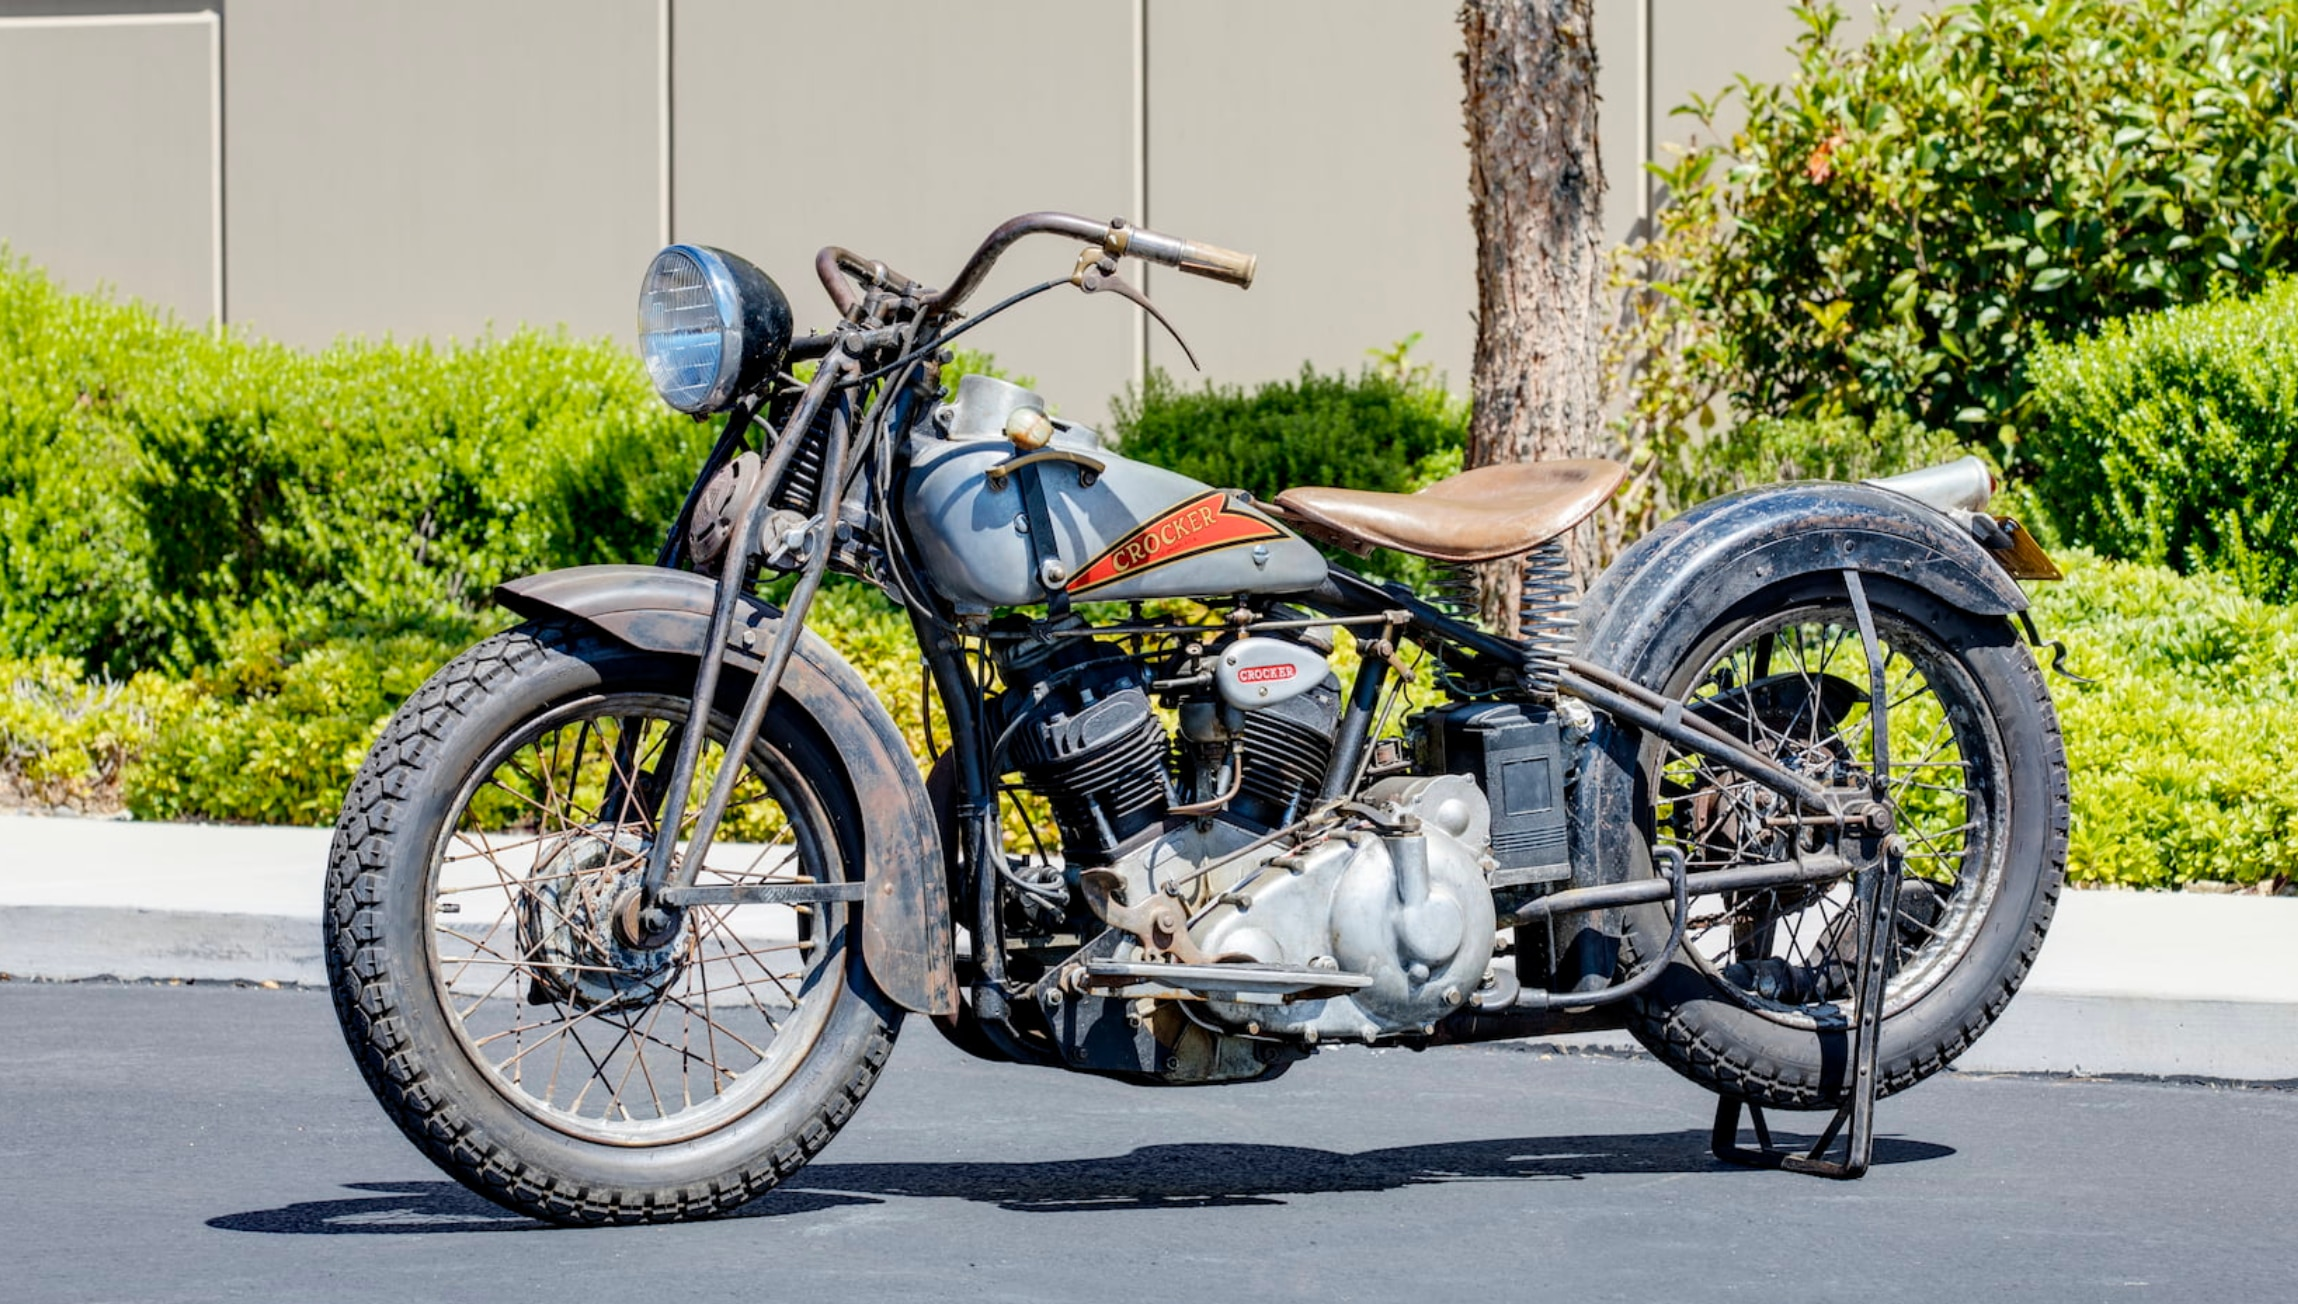 This bike is said to be unrestored, helping it achieve an amazing $825,000 at auction in 2019.